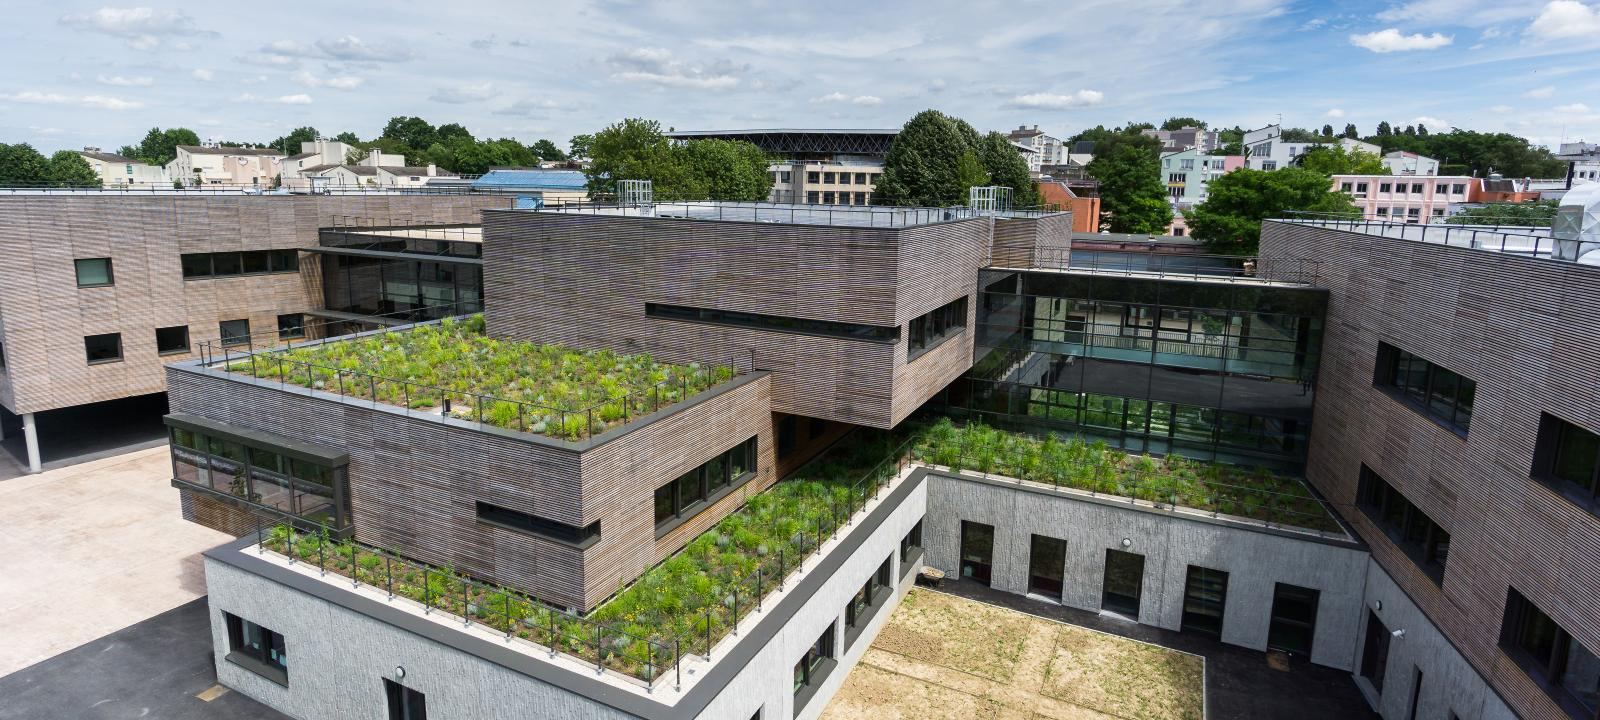 Irrigated Extensive Green Roof Zinco Green Roof Systems